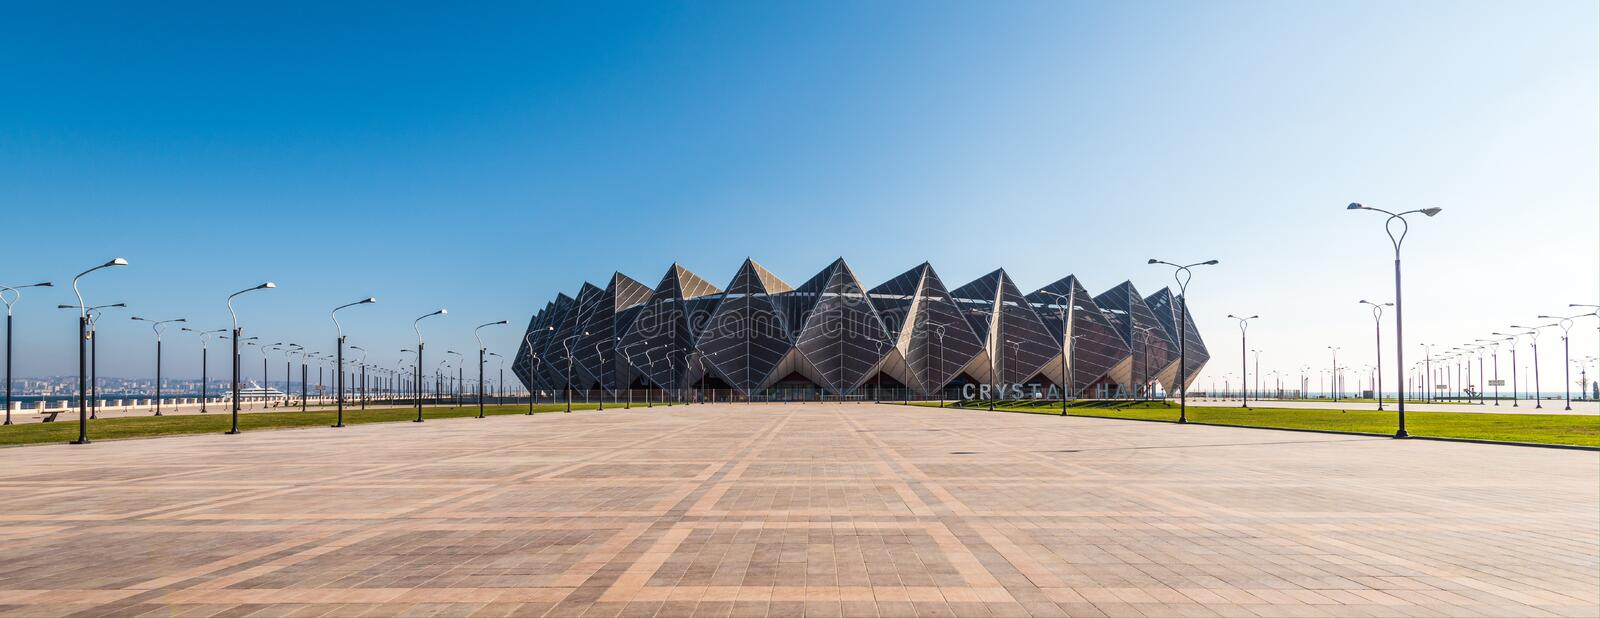 Baku bay embankment, Crystal hall building stock photography